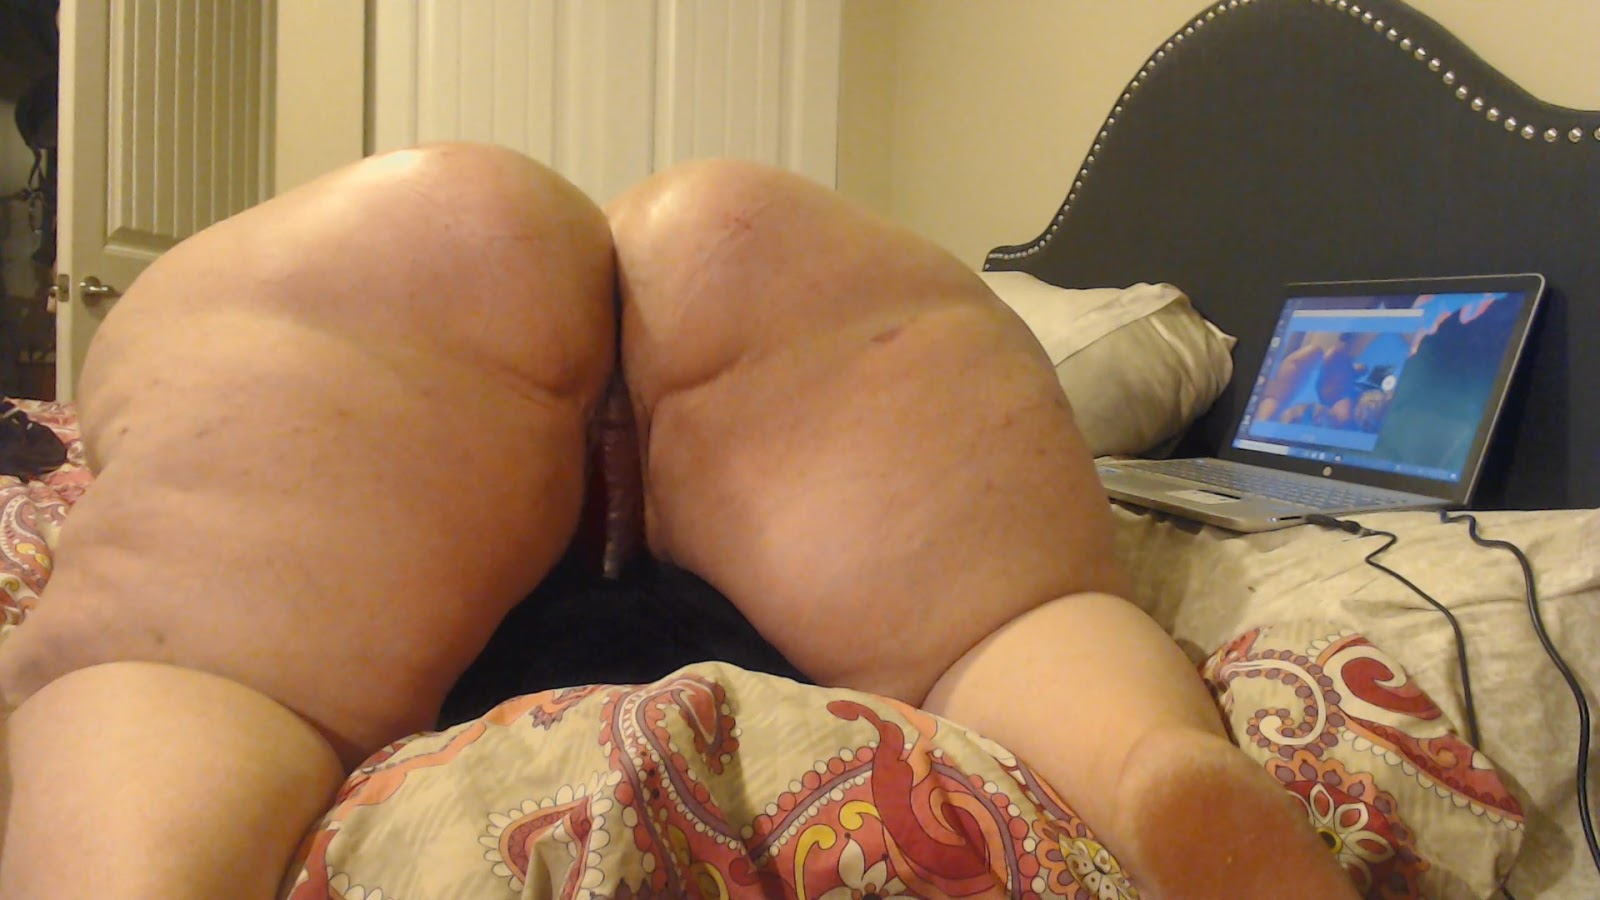 pearbooty88